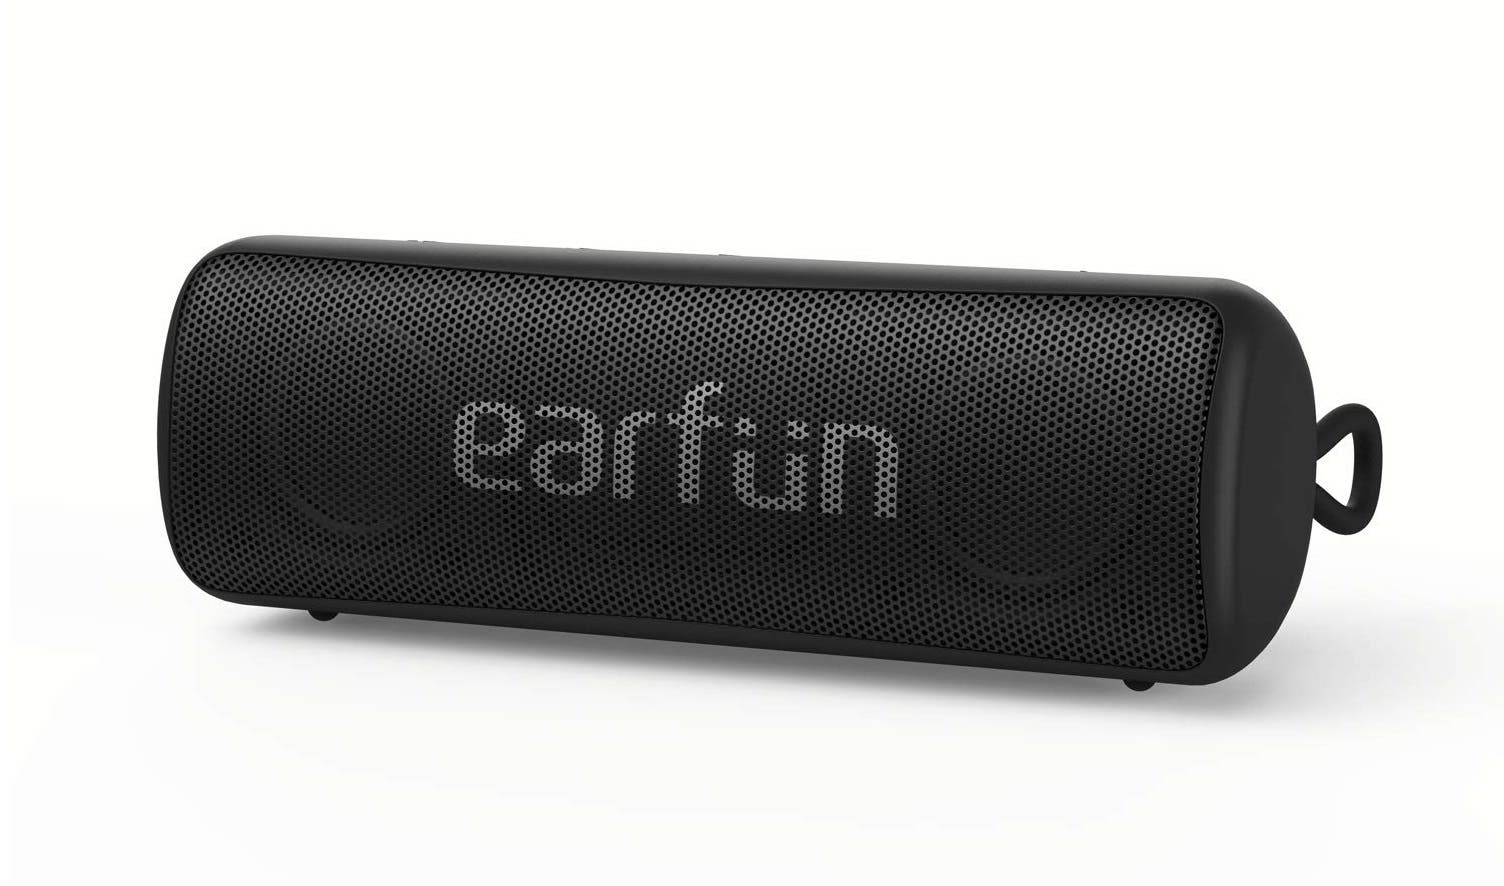 EarFun Go Wireless Bluetooth Speaker